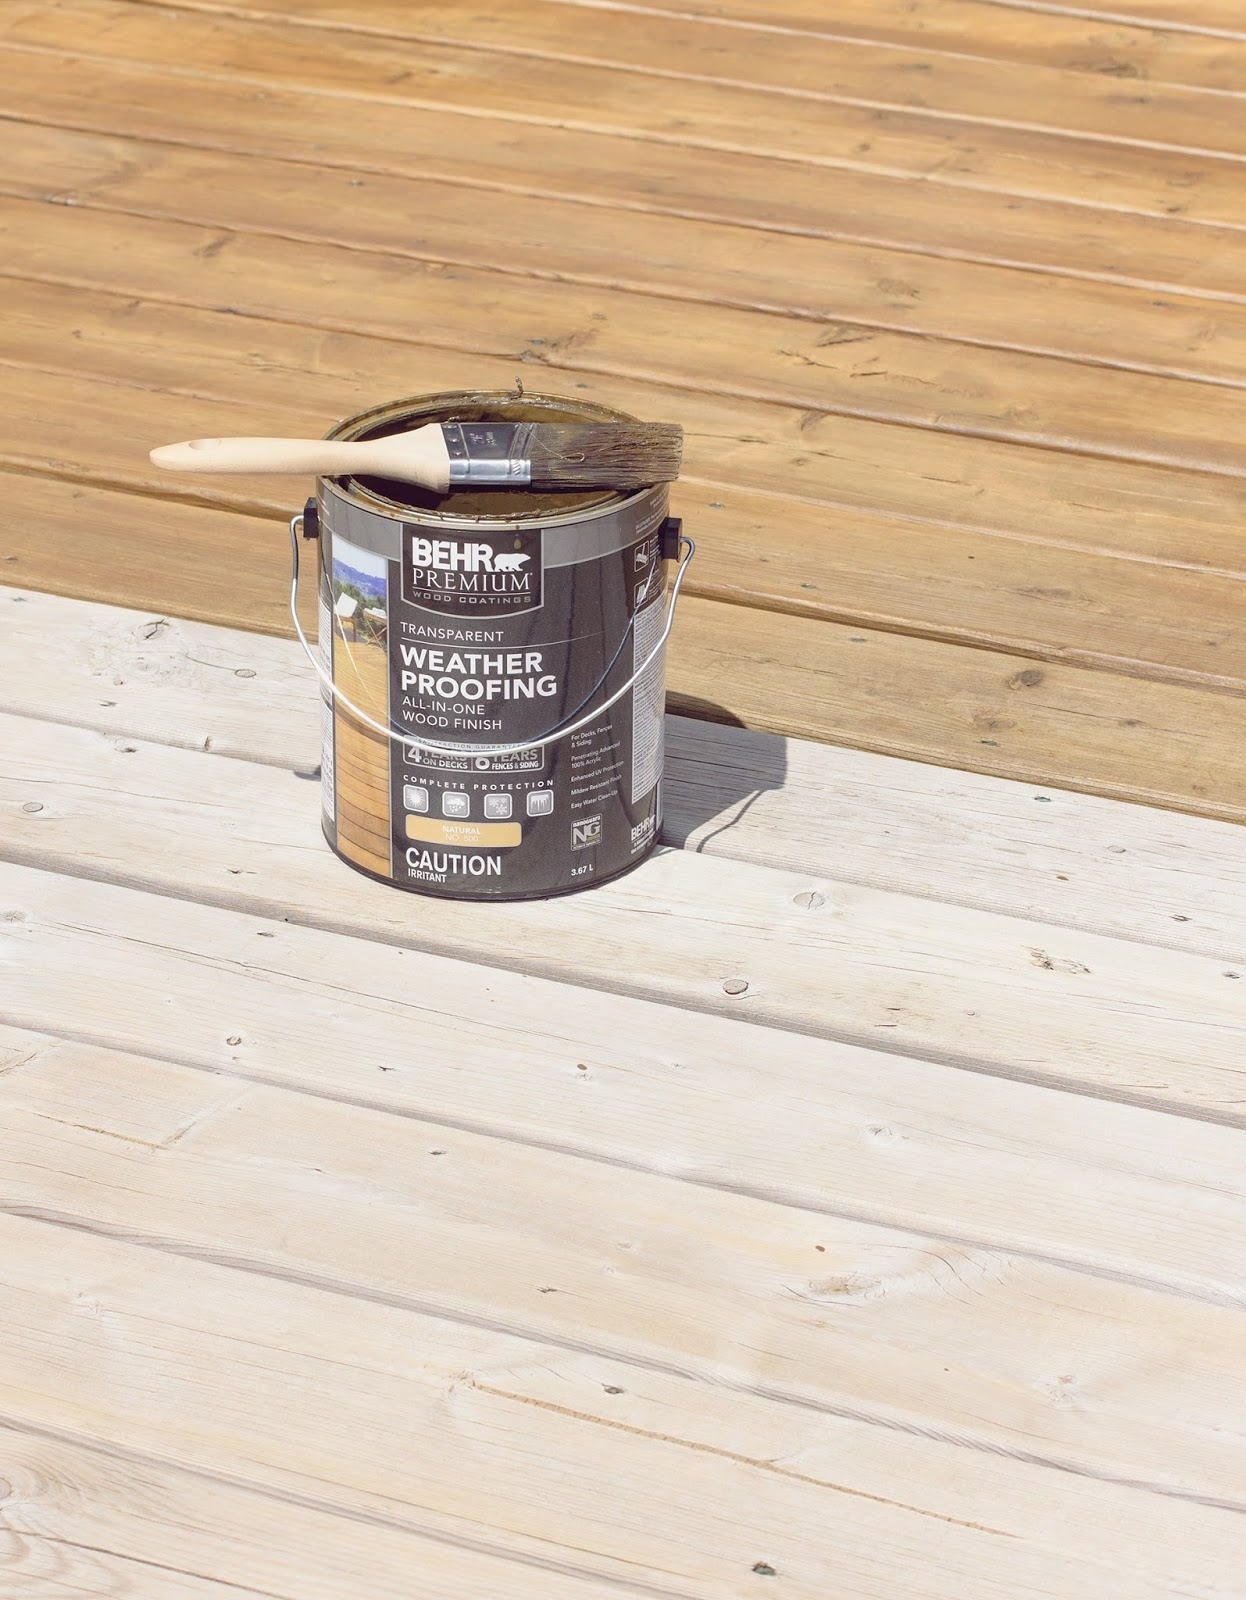 Innovative Hdblogsquad How To Clean Stain A Deck Brittany Stager Behr Deck Stain Reviews Behr Deck Stain Color Chart houzz-03 Behr Deck Stain